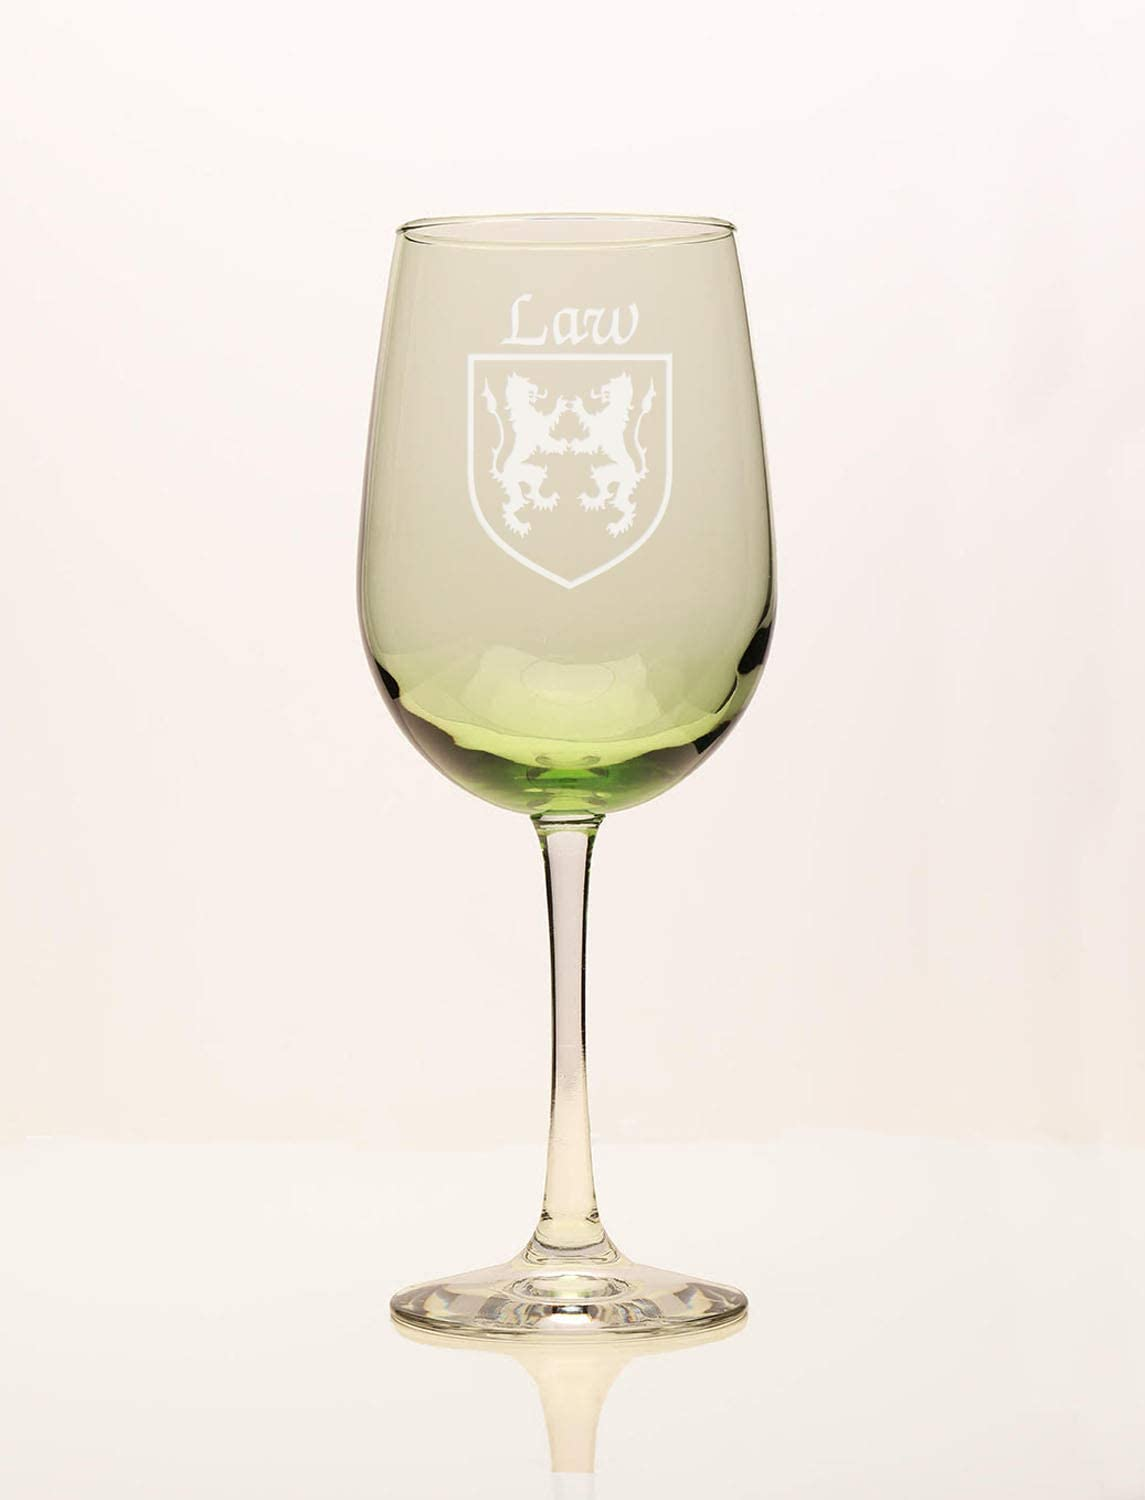 Law Albuquerque Mall Irish Coat of Arms Green Wine All items free shipping Glass